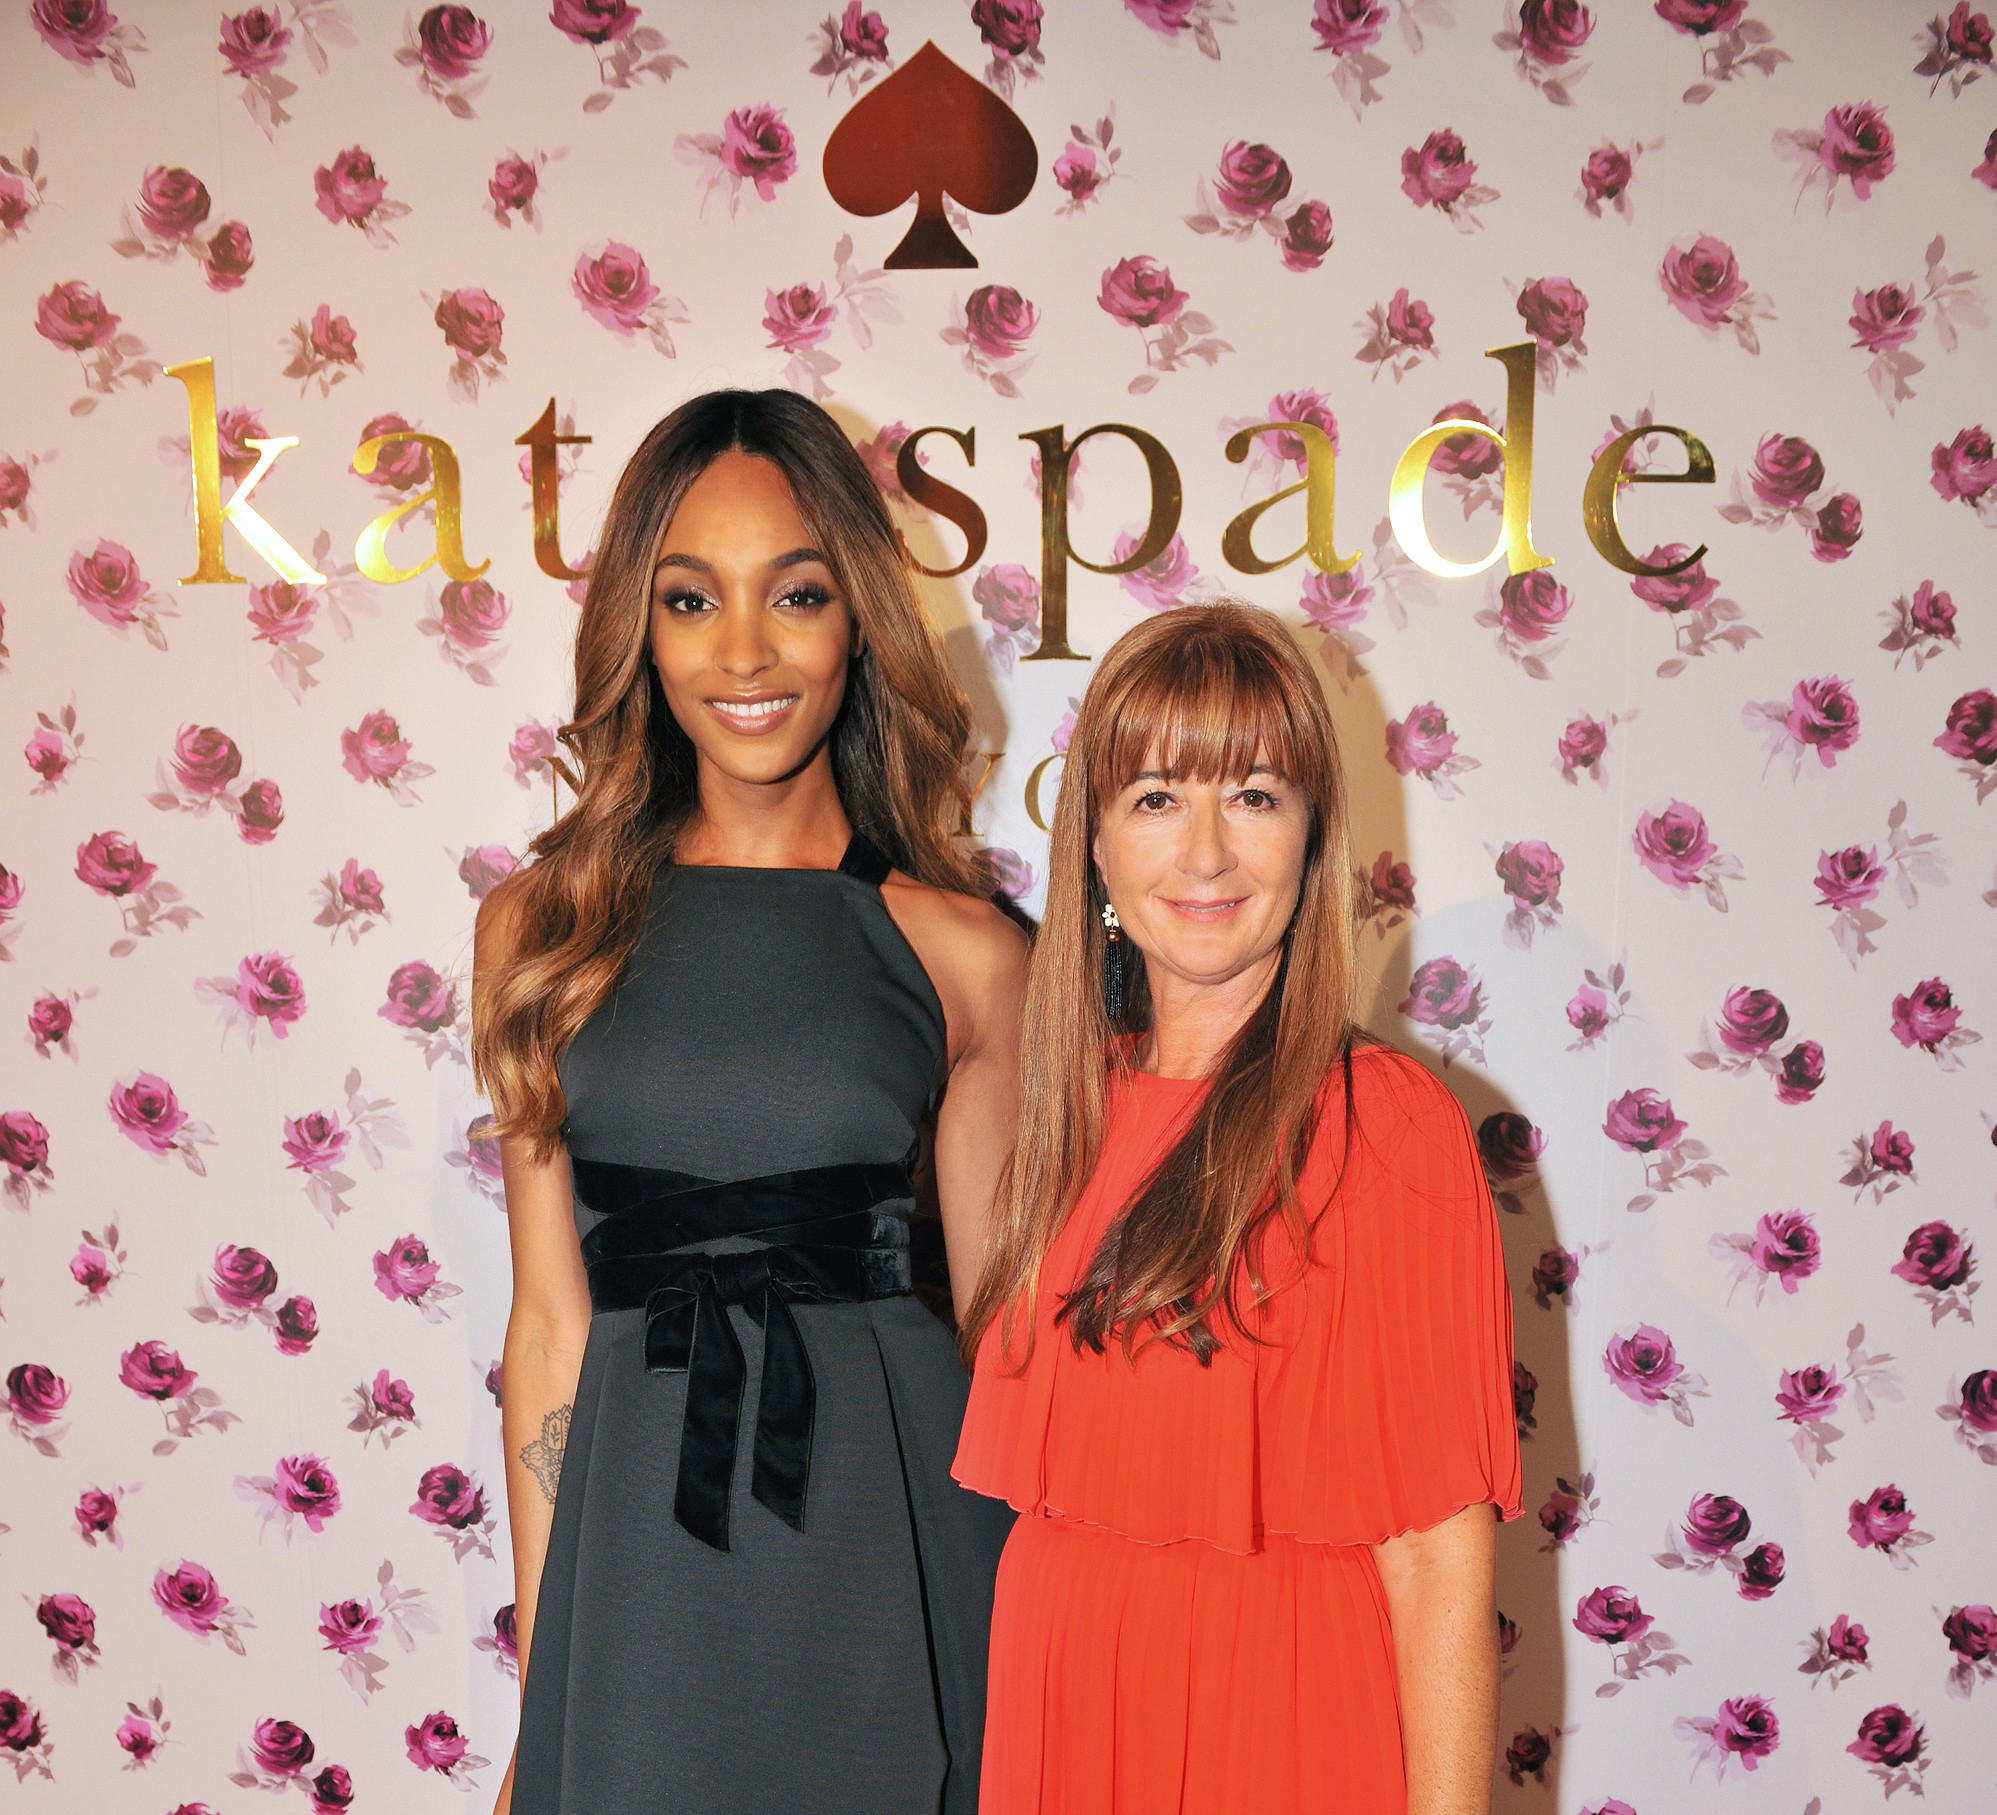 Kate Spade Stages Music Event In Tokyo